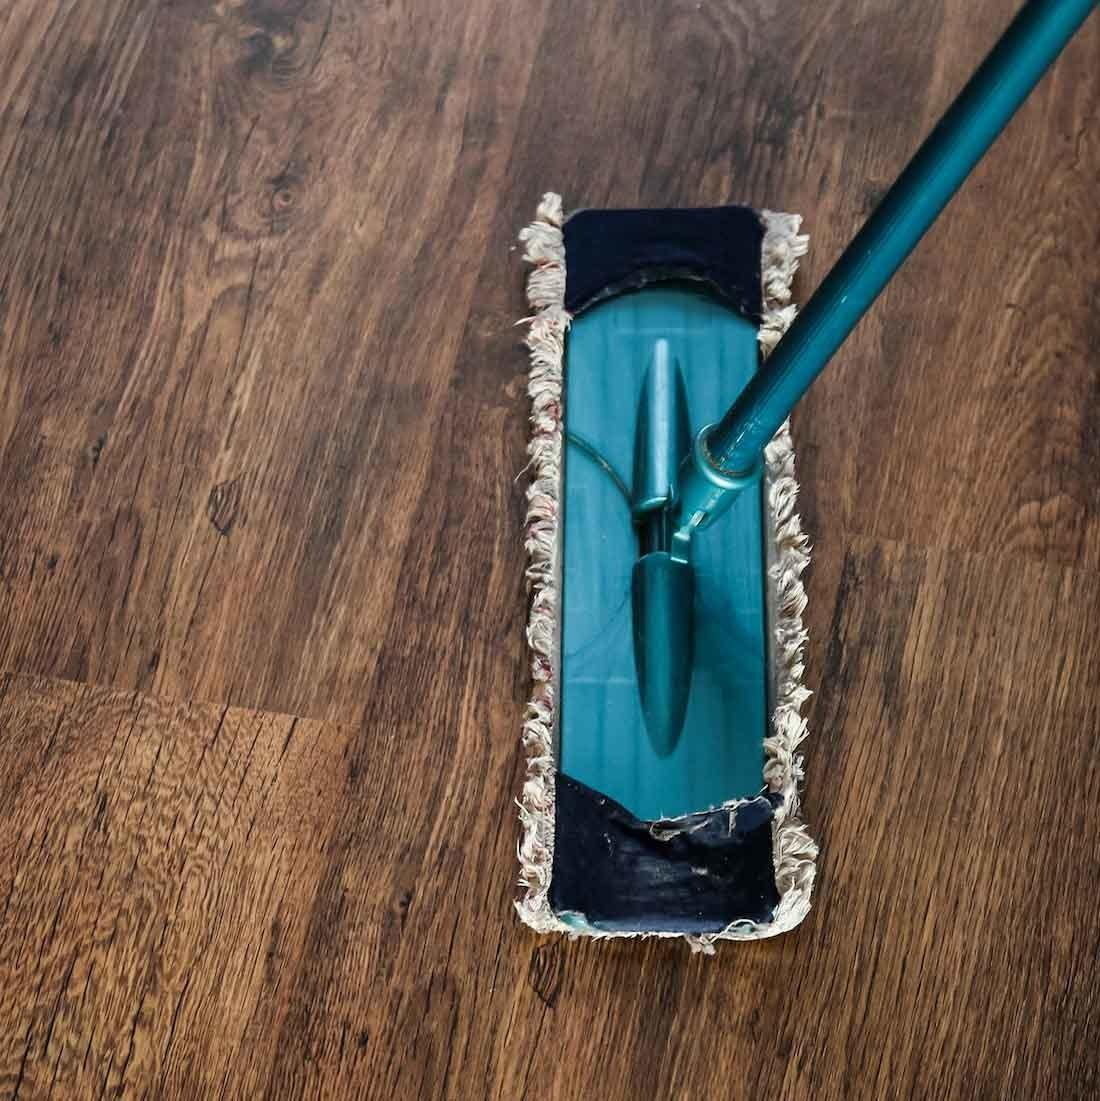 Diy Natural Cleaning Recipes Your Healthy Home